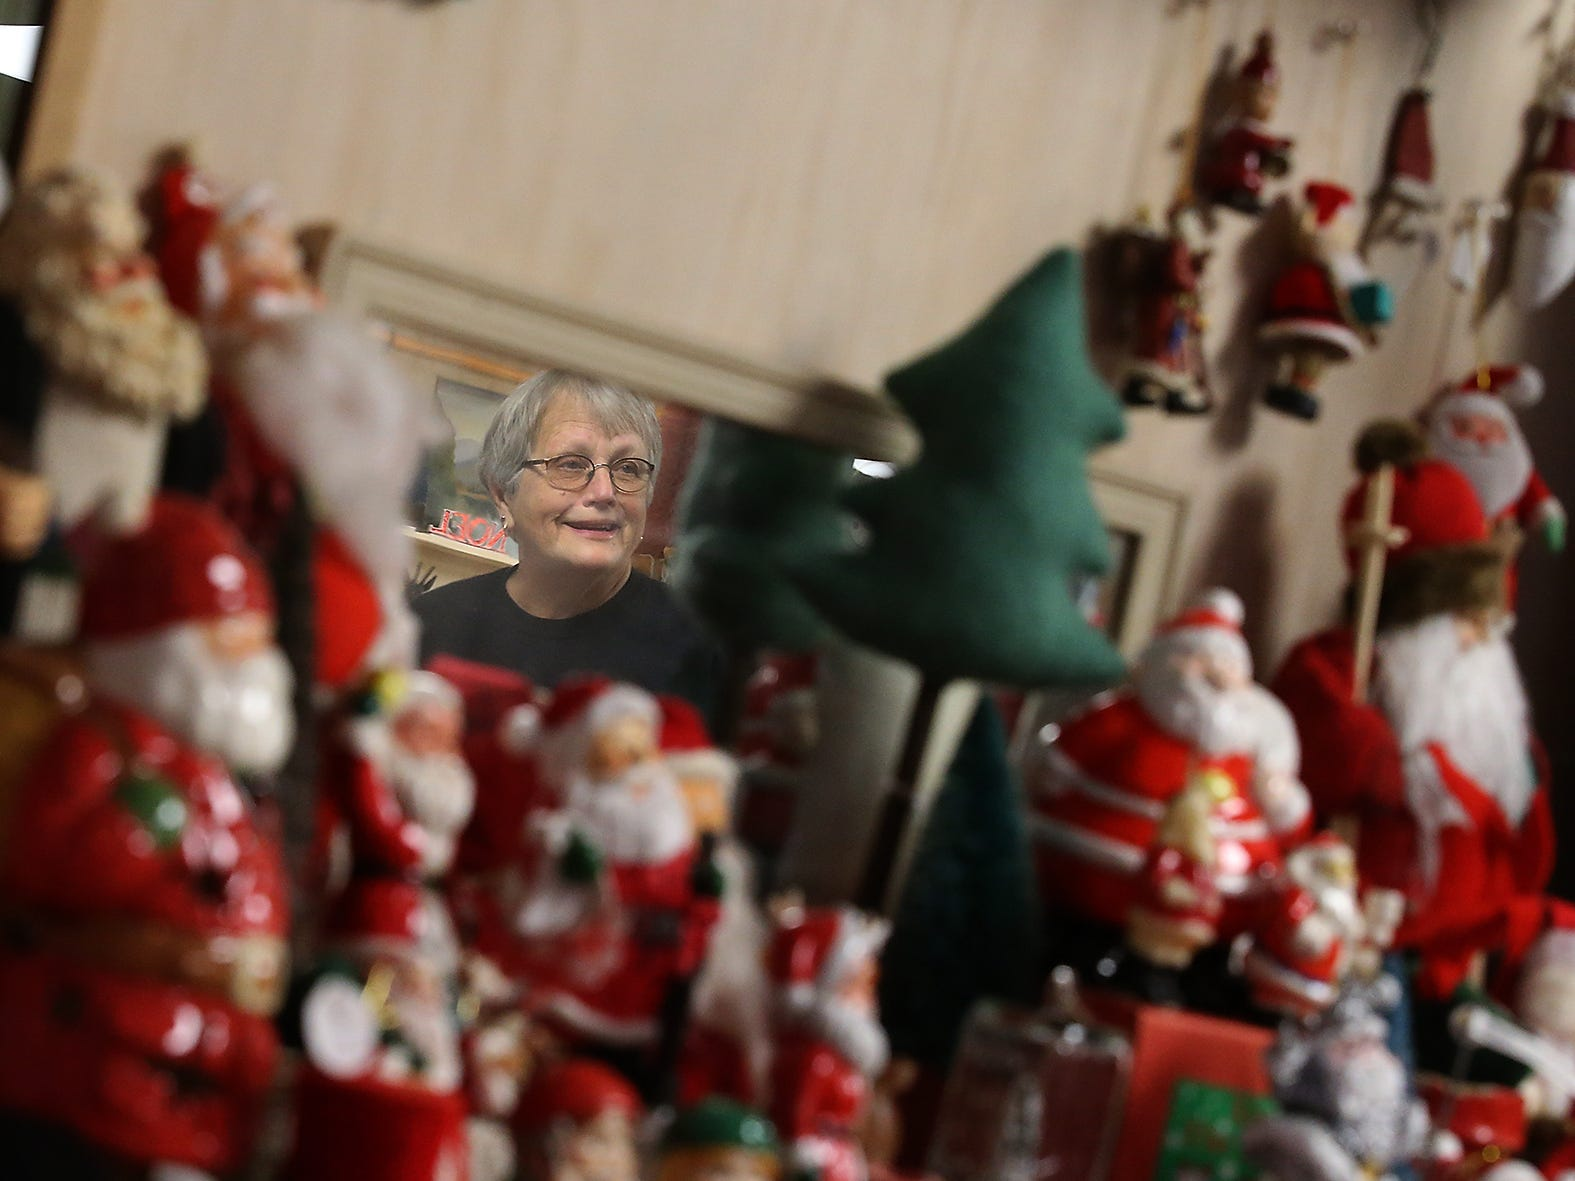 Carolee Pederson is reflected in a mirror surrounded by Santa figurines at The Christmas House/Lemolo Vintage Market in Poulsbo on Wednesday, November 28, 2018.